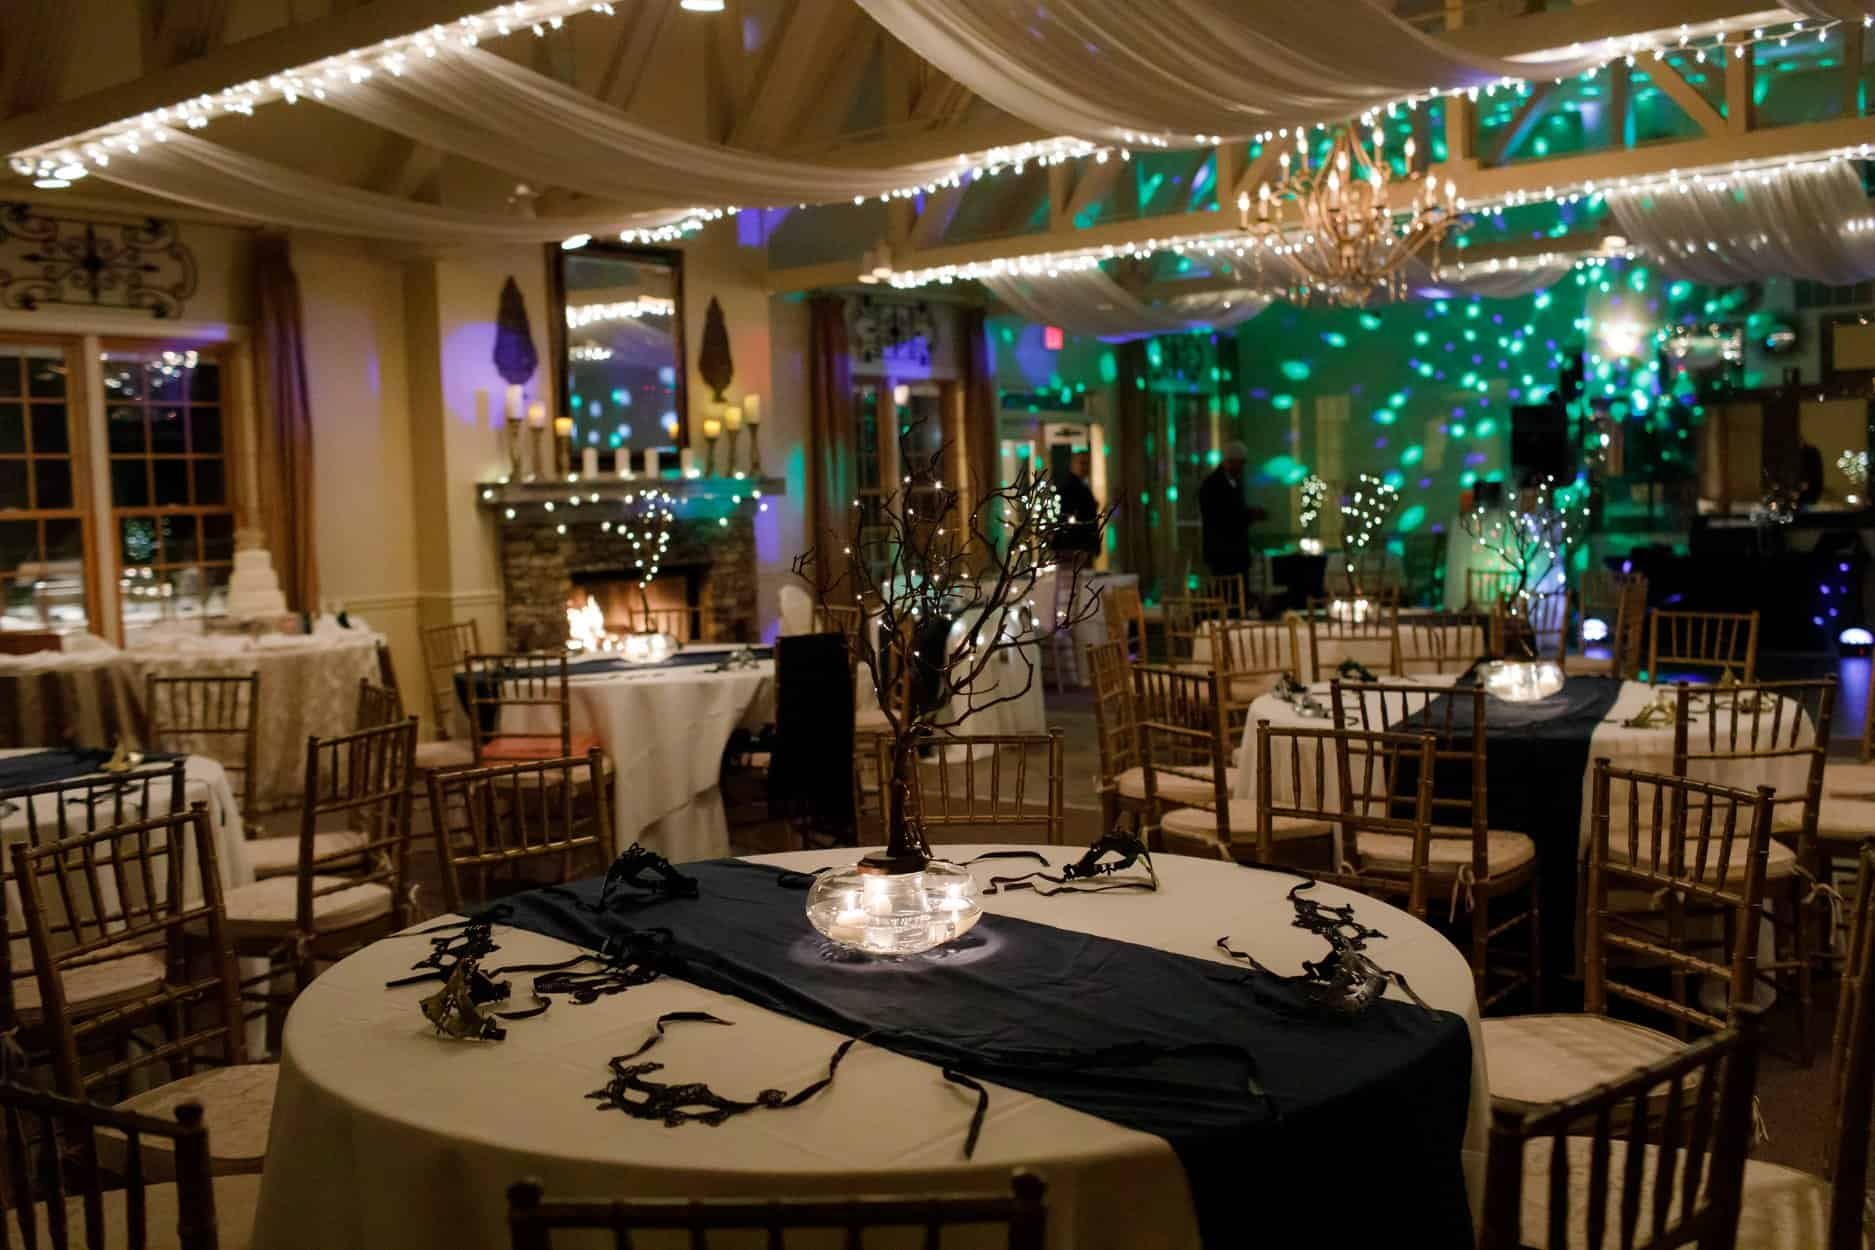 Guest tables at wedding reception with black runners, tall centerpieces and black masks